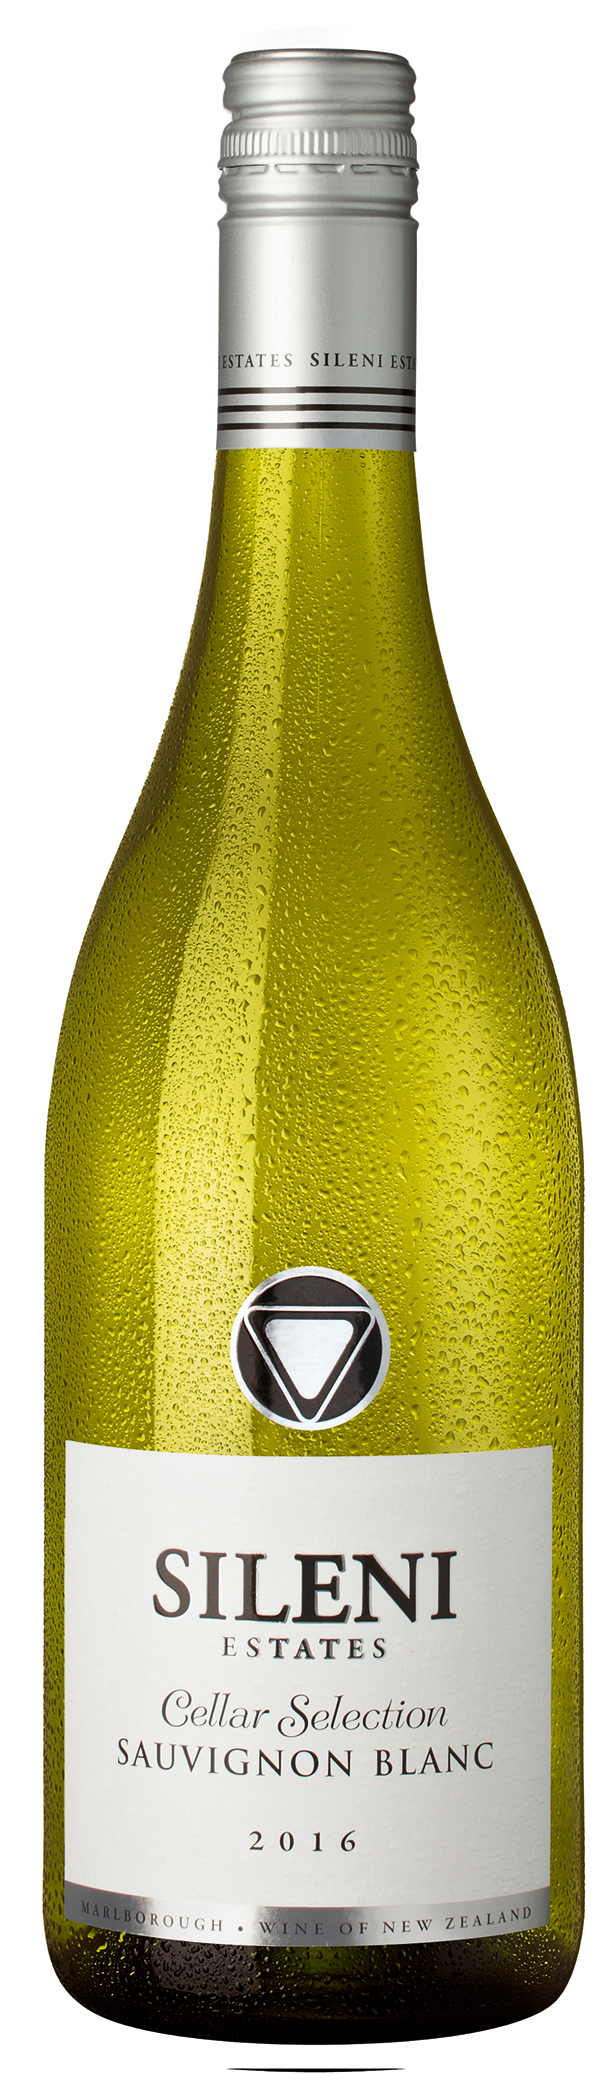 2018 Sauvignon Blanc Cellar Selection, Sileni Estates - Marlborough/New Zealand